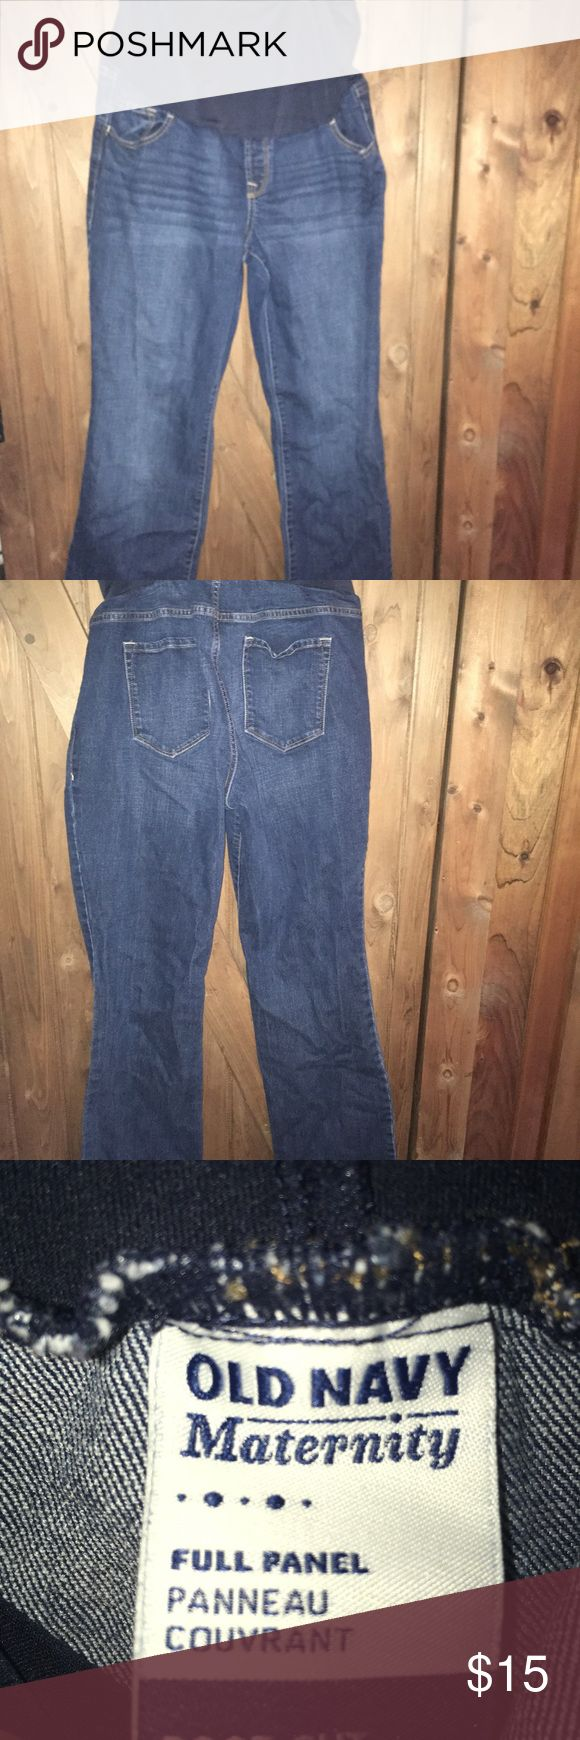 Old Navy Maternity jeans Full panel boot cut maternity jeans . Dark denim . Sz 16 reg. Like new Old Navy Jeans Boot Cut